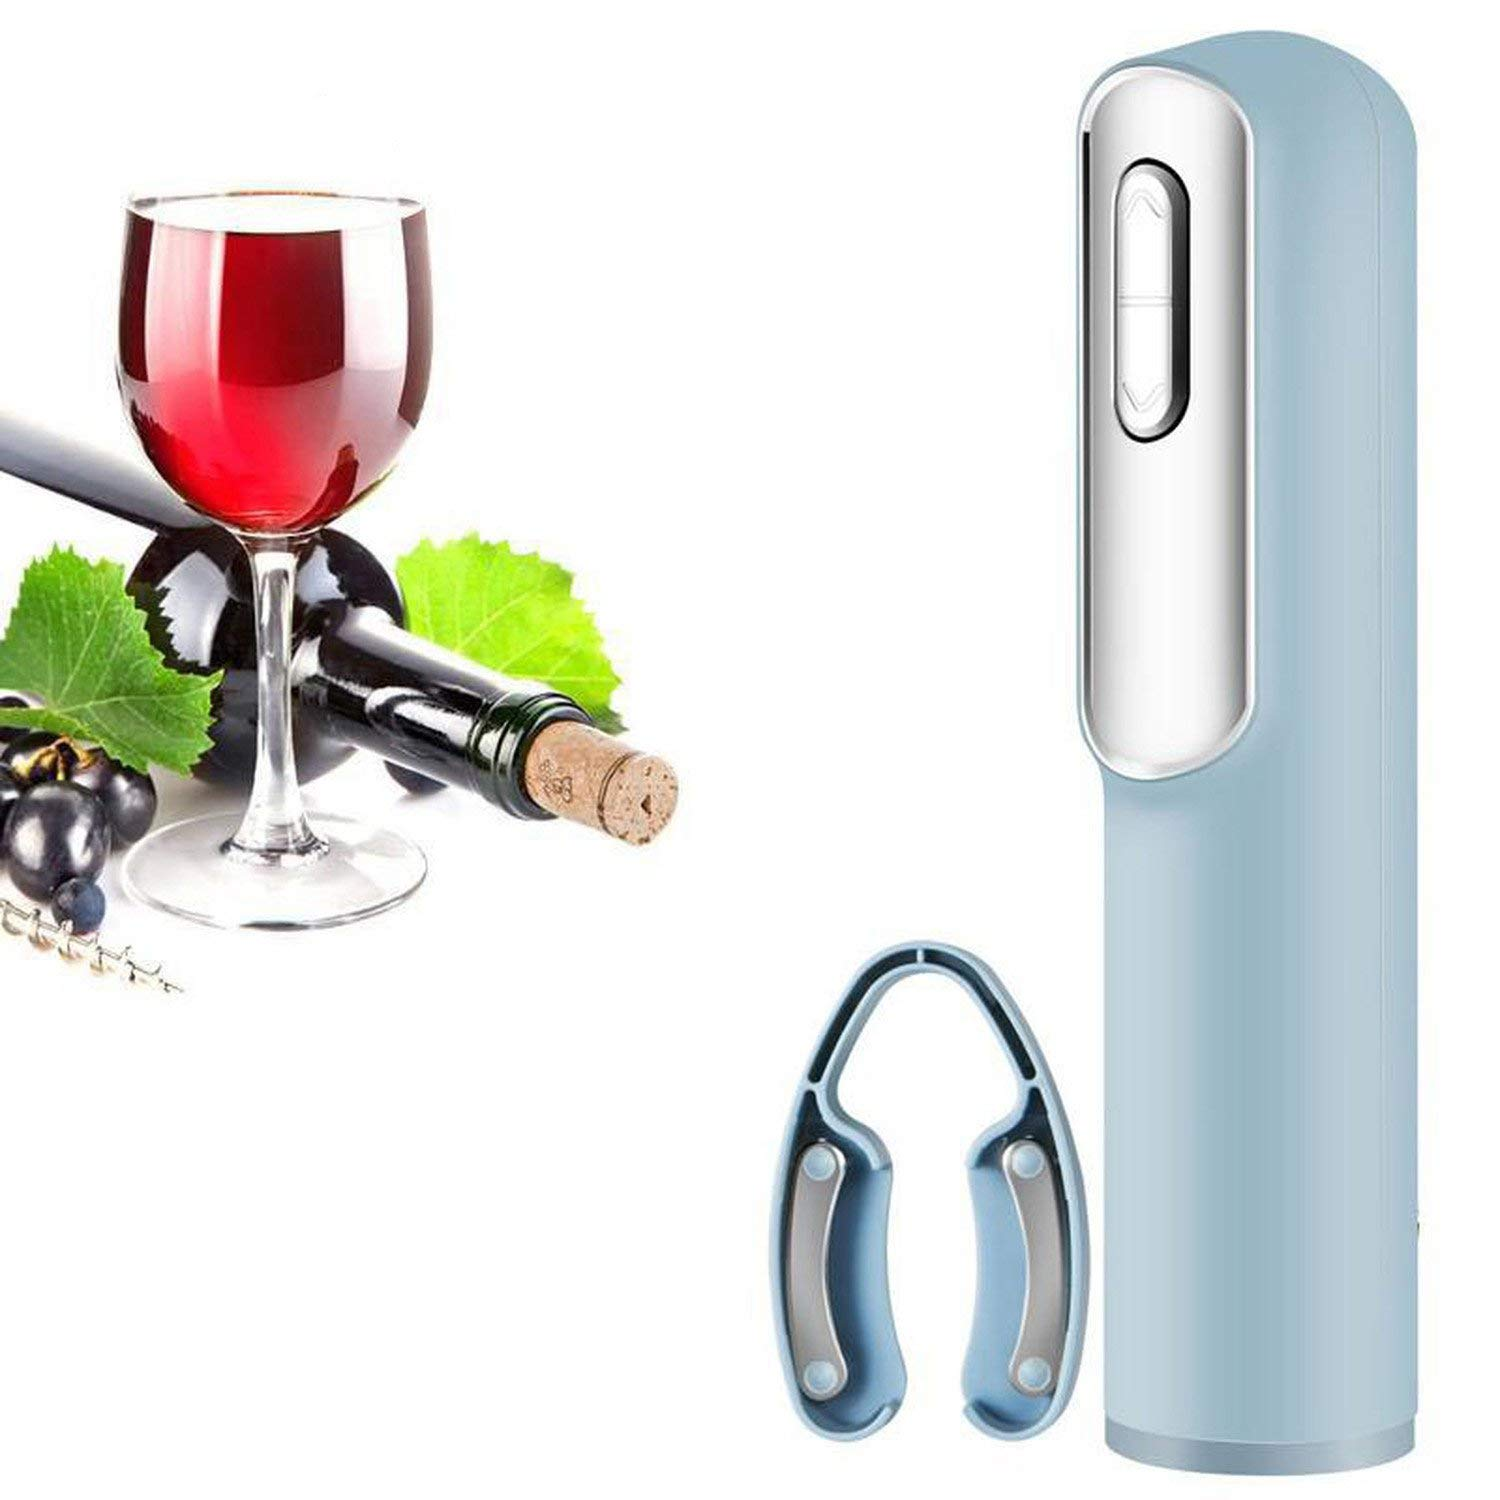 Electric Wine Opener Automatic Wine Bottle Opener Kit With Foil Cutter & Usb Charging Cable Drinking Kitchen Gadgets